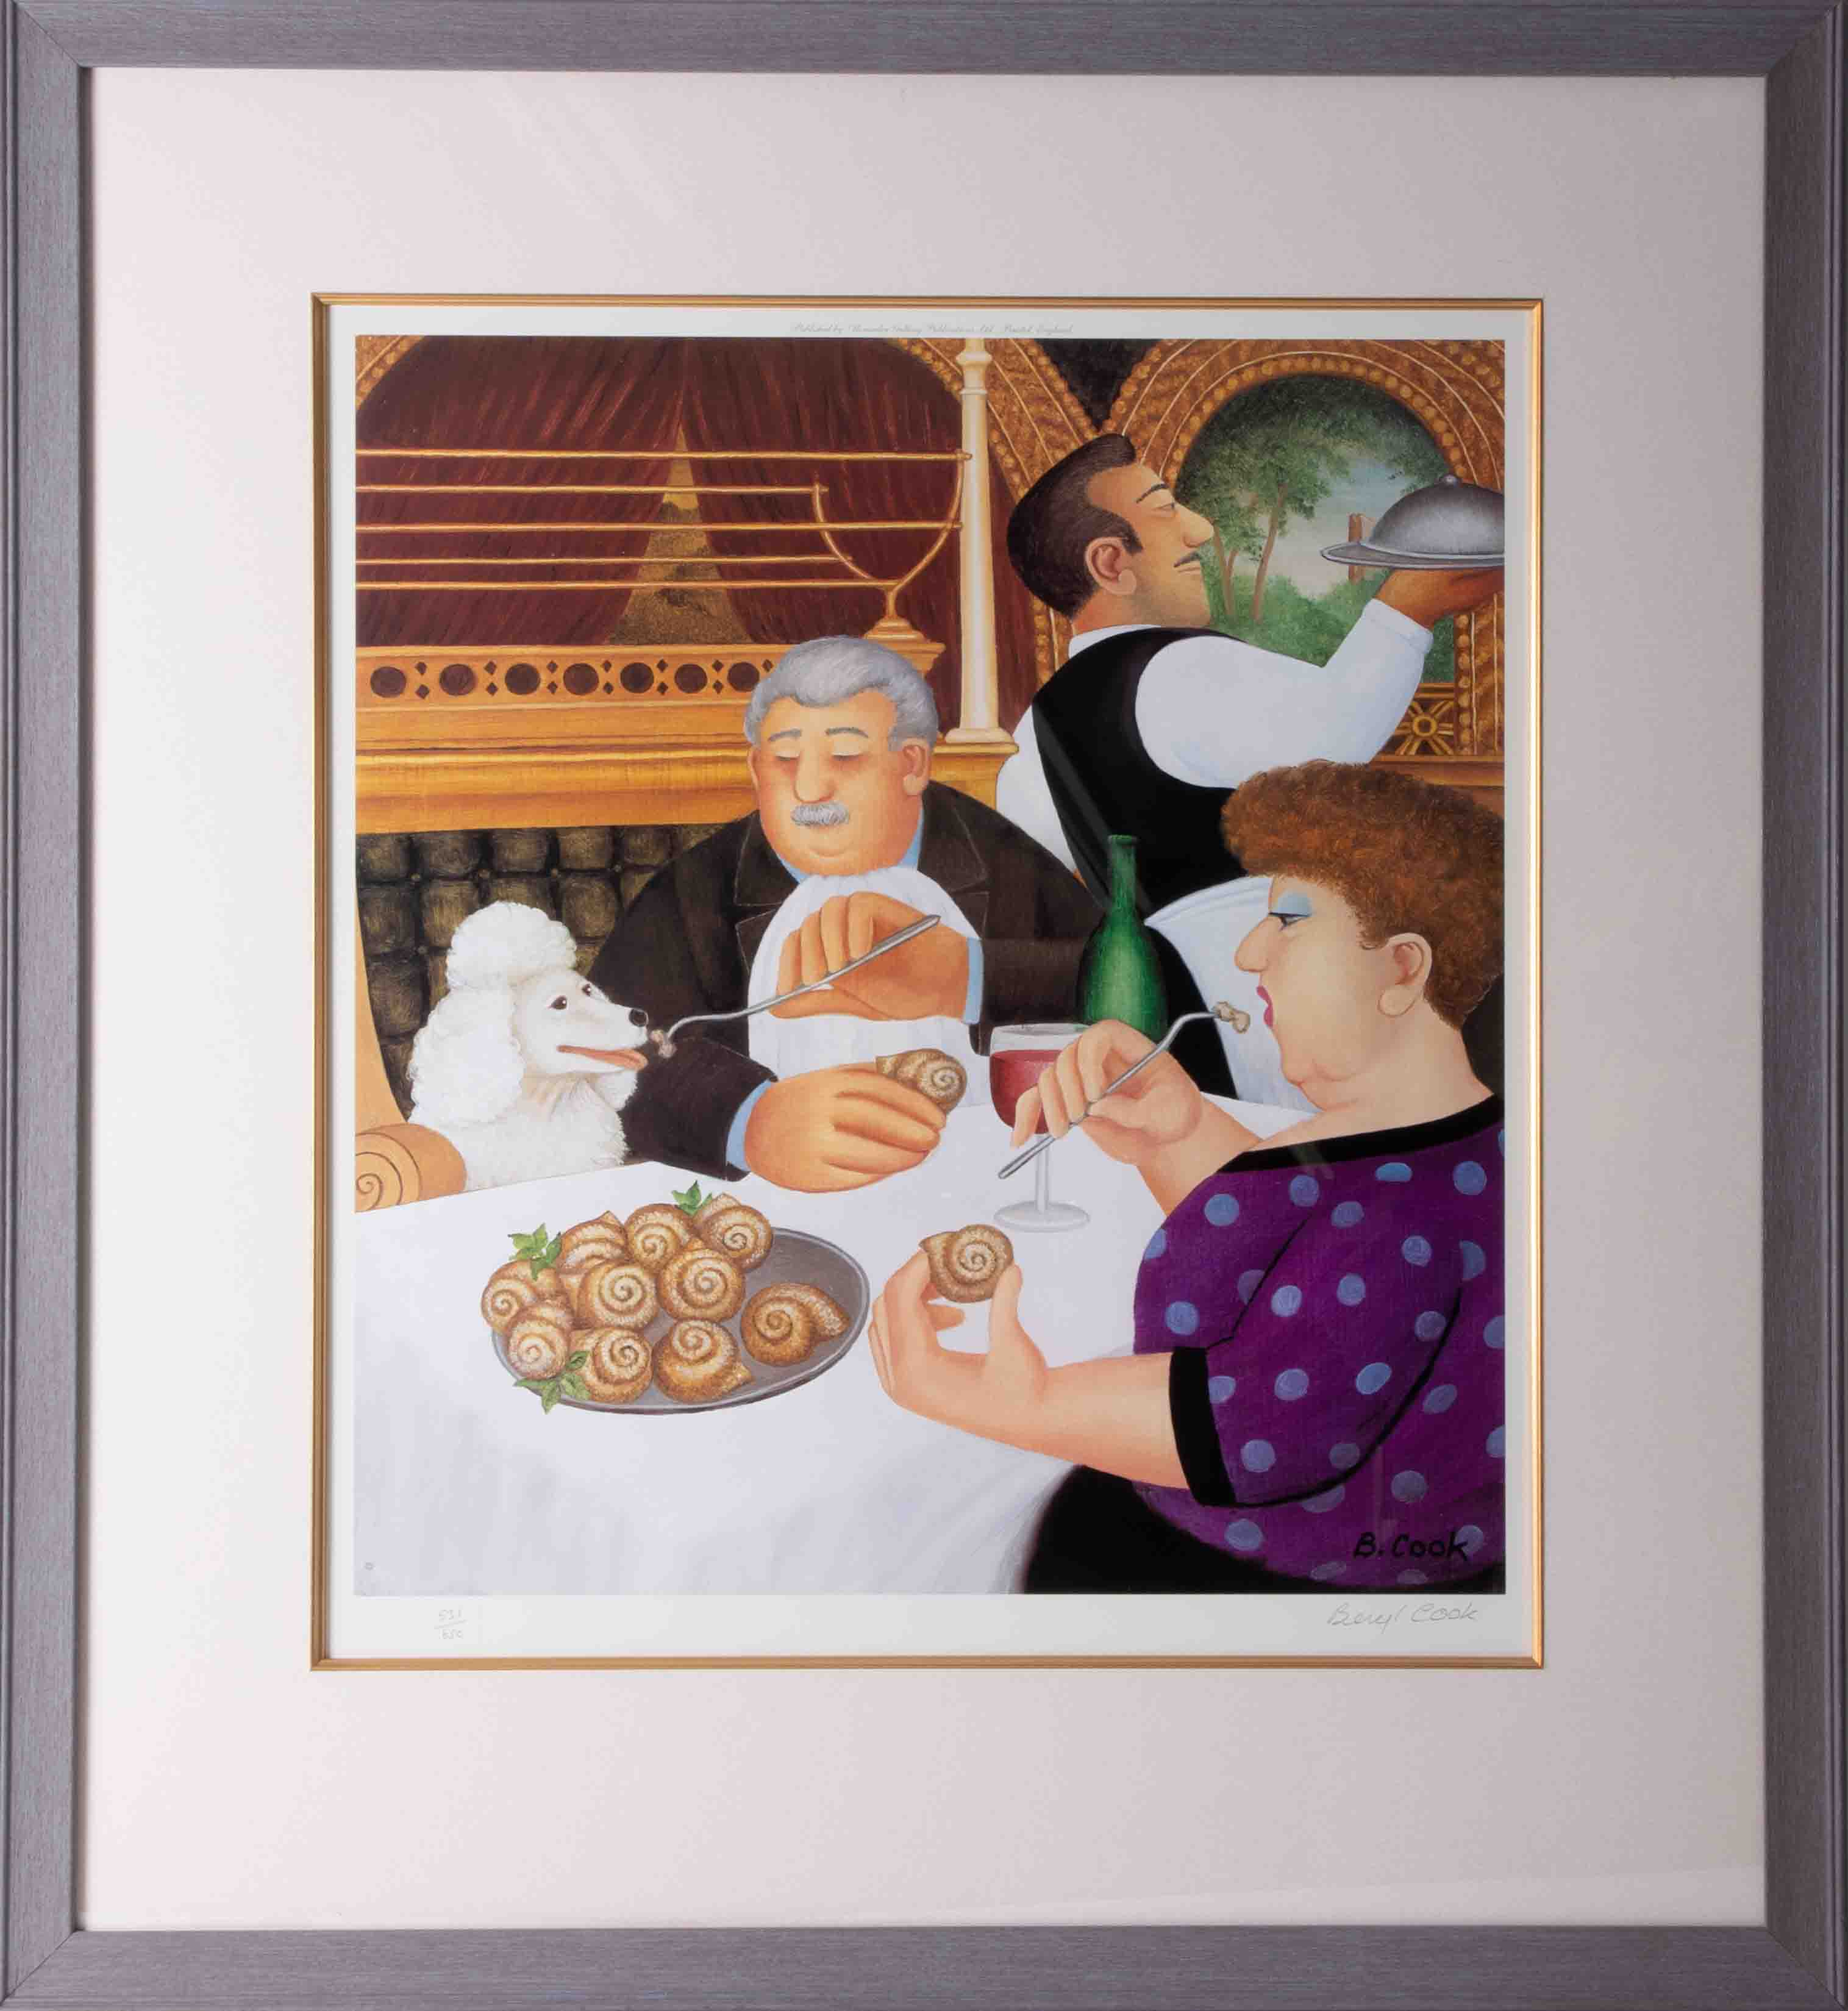 Beryl Cook (1926-2008) 'Dining In Paris' 2001 lithograph limited edition print 531/650, signed, 45cm